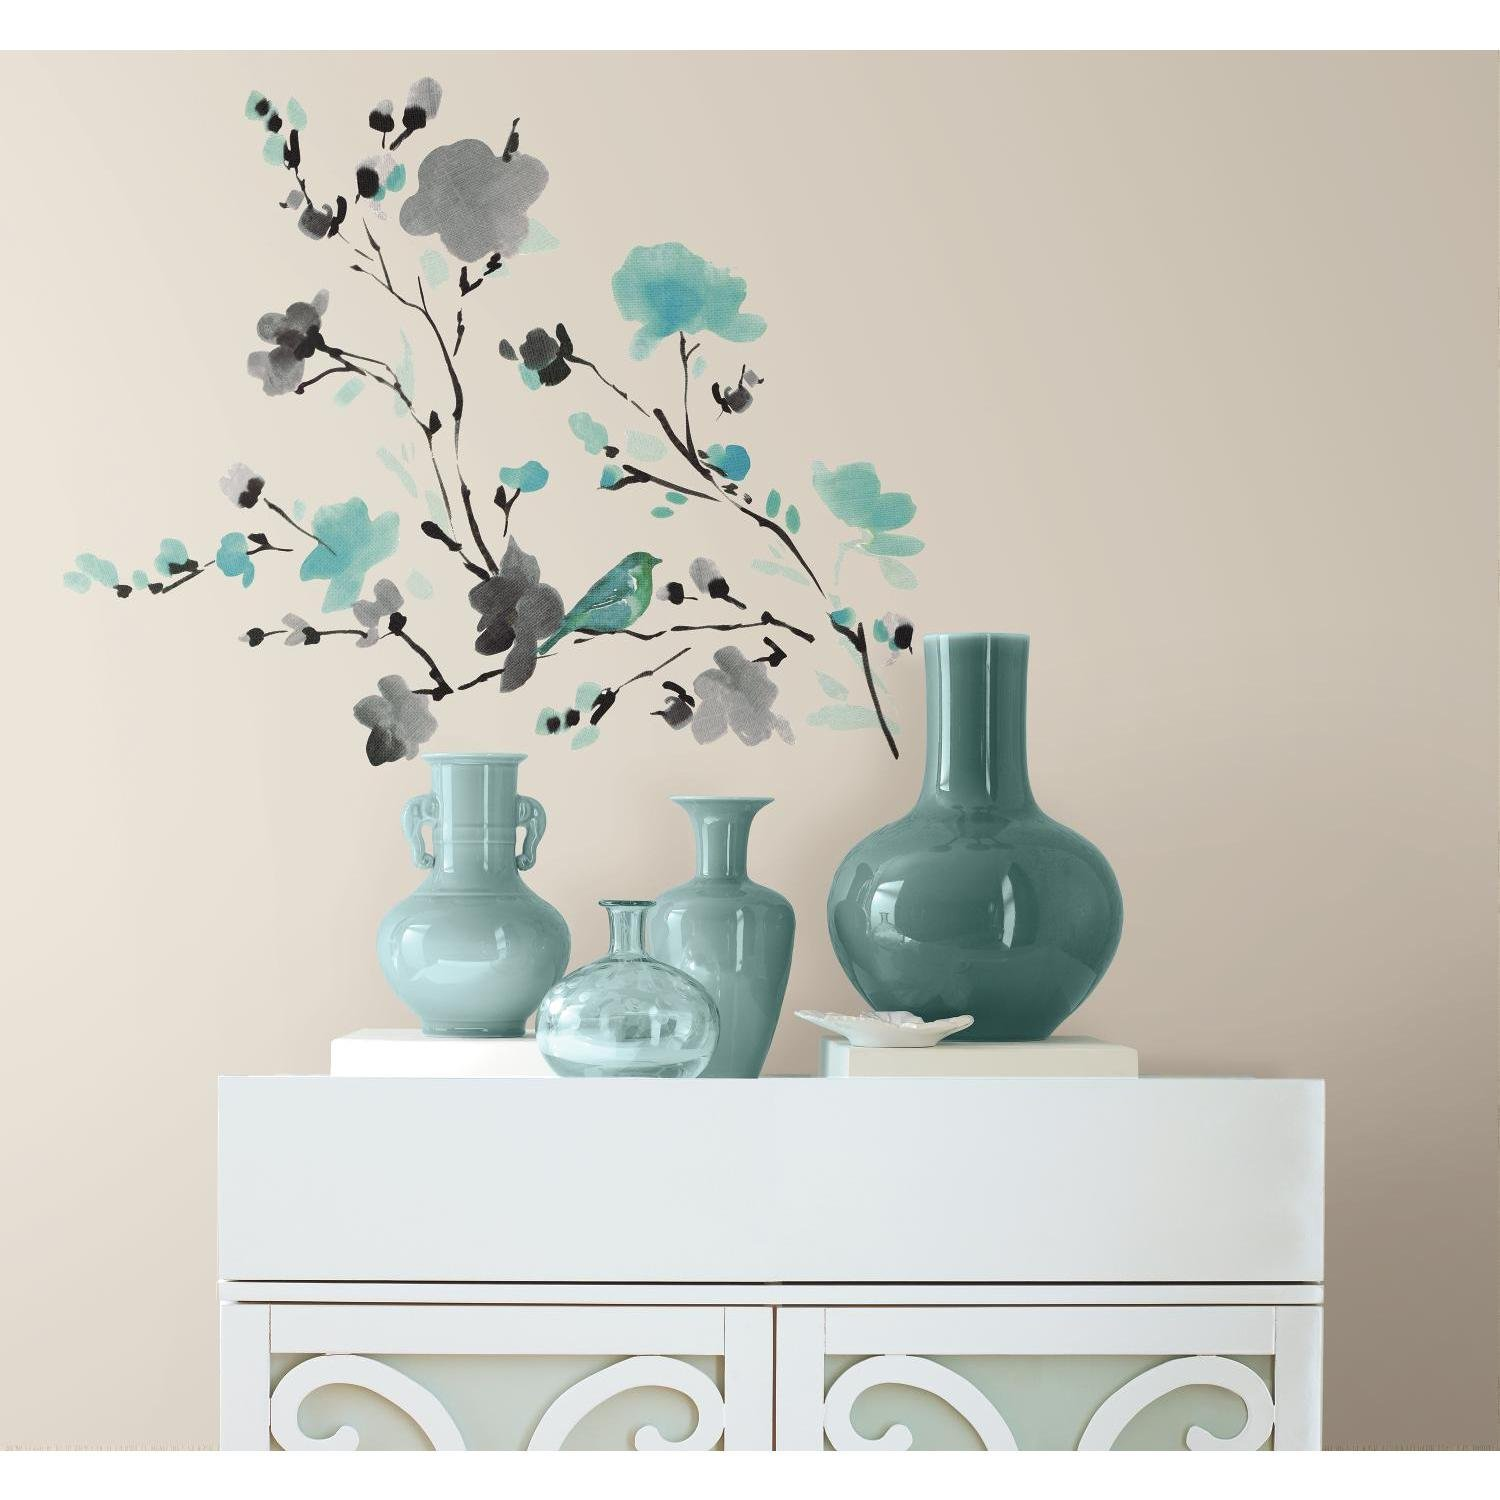 RoomMates Blossom Watercolor Bird Branch Peel And Stick Wall Decals - RMK2687SCS by RoomMates